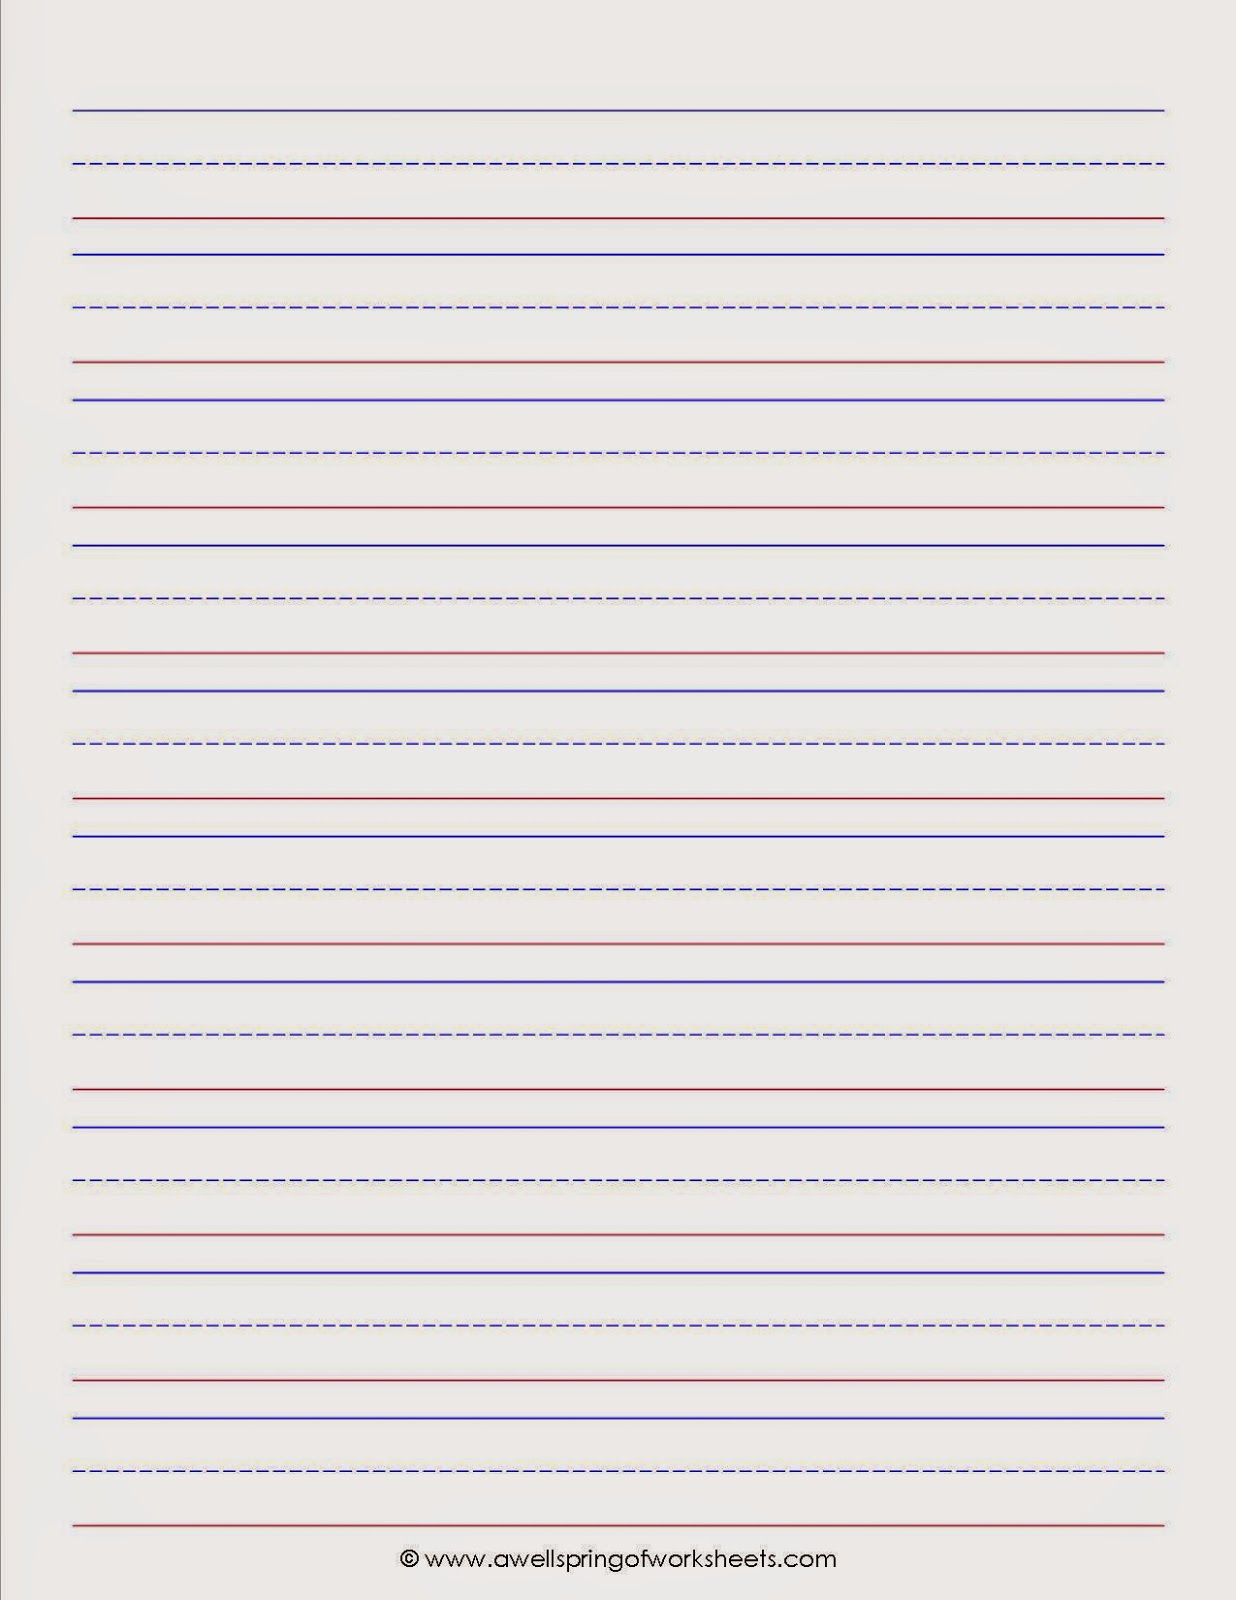 online lined paper to write on